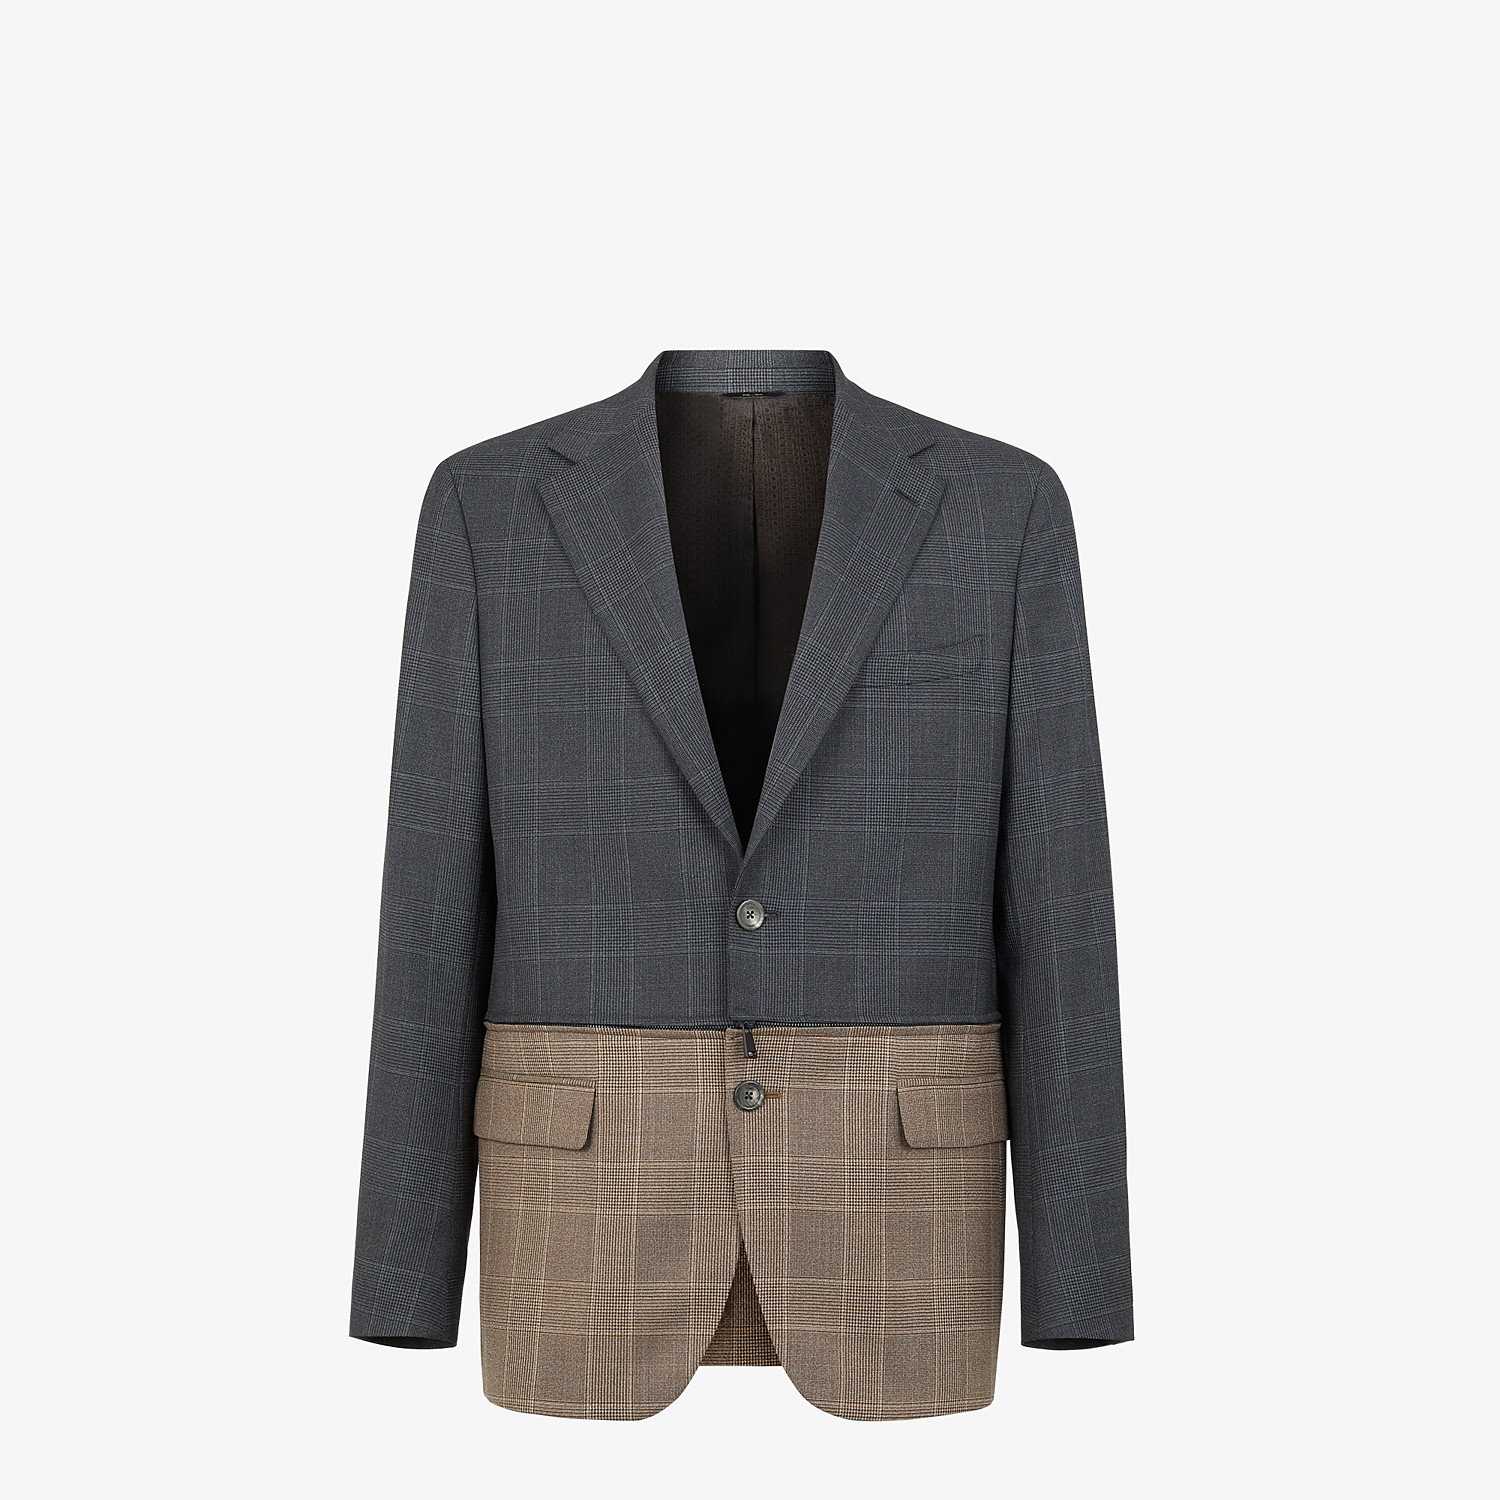 FENDI JACKET - Multicolour Prince of Wales check blazer - view 1 detail